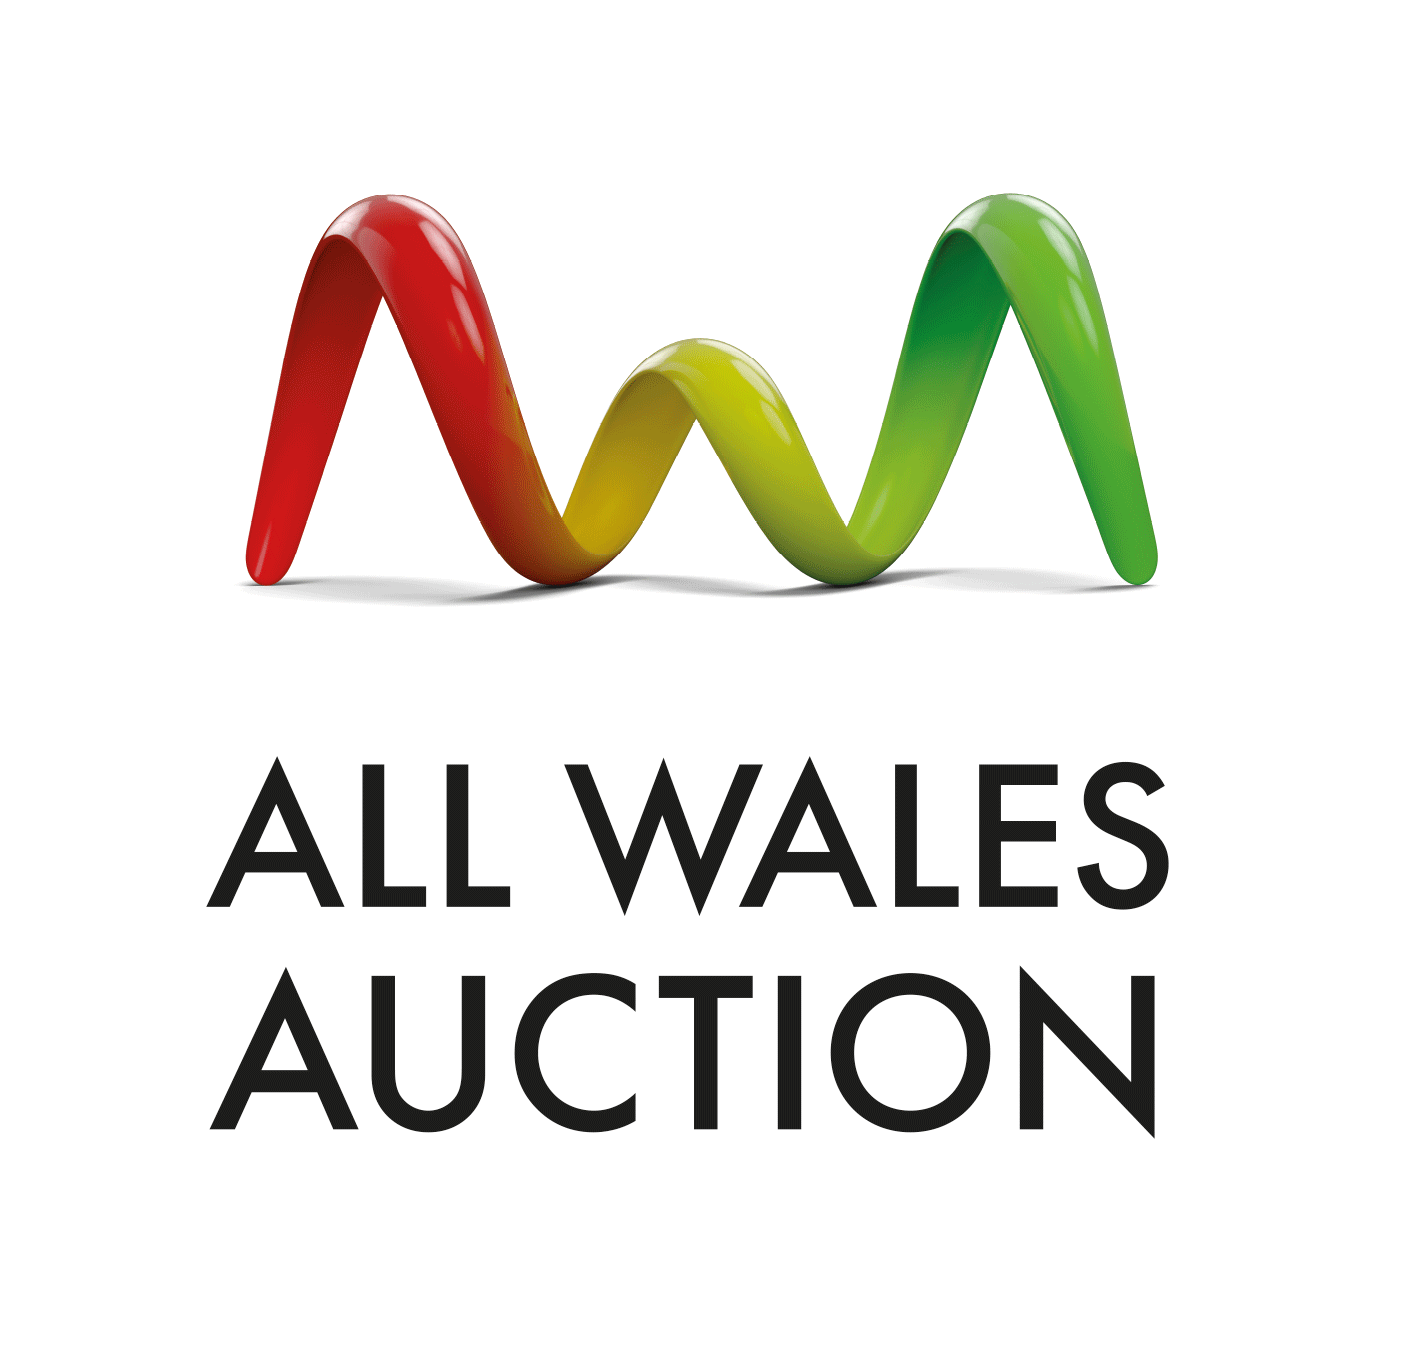 All Wales Auction - company logo